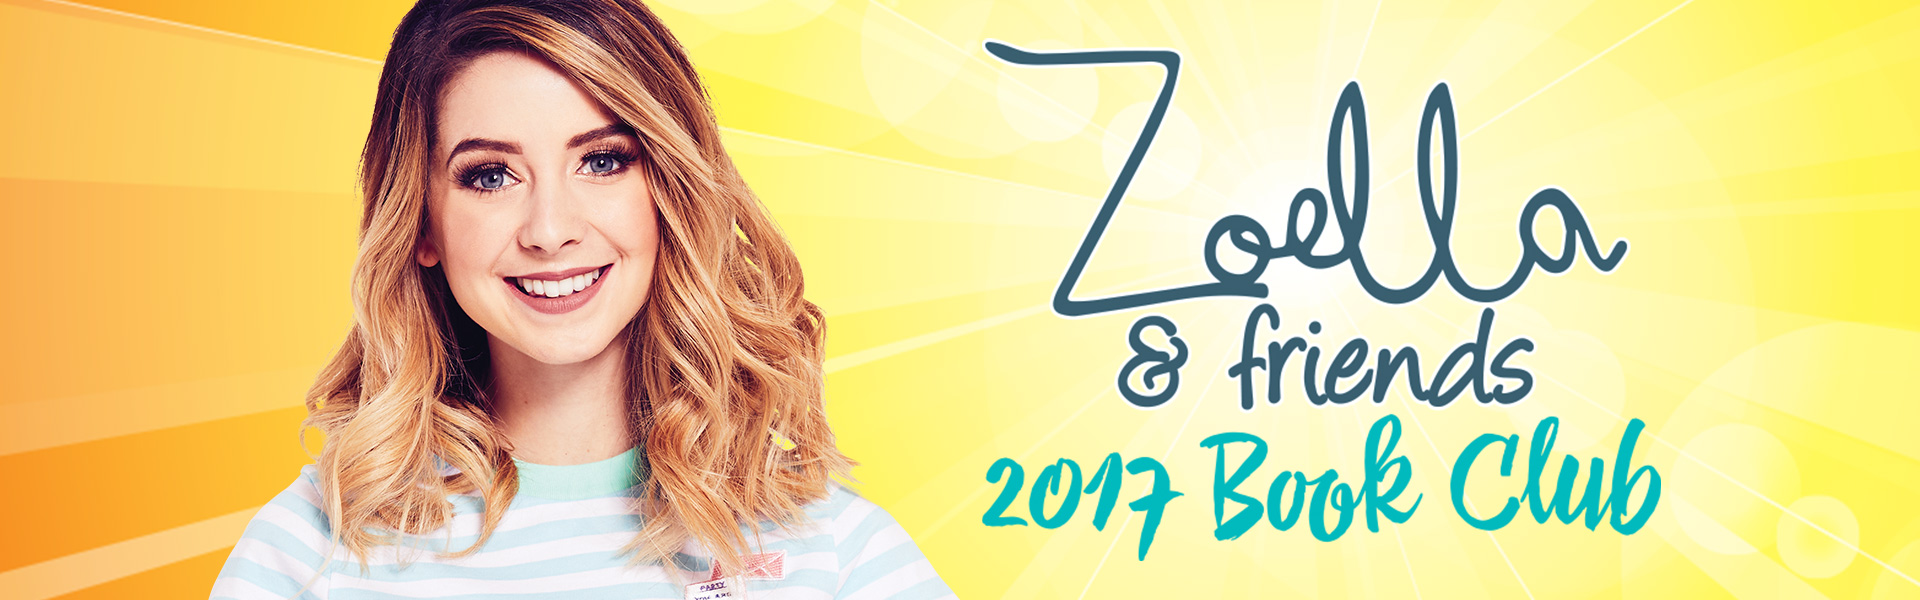 The Zoella & Friends 2017 Book Club